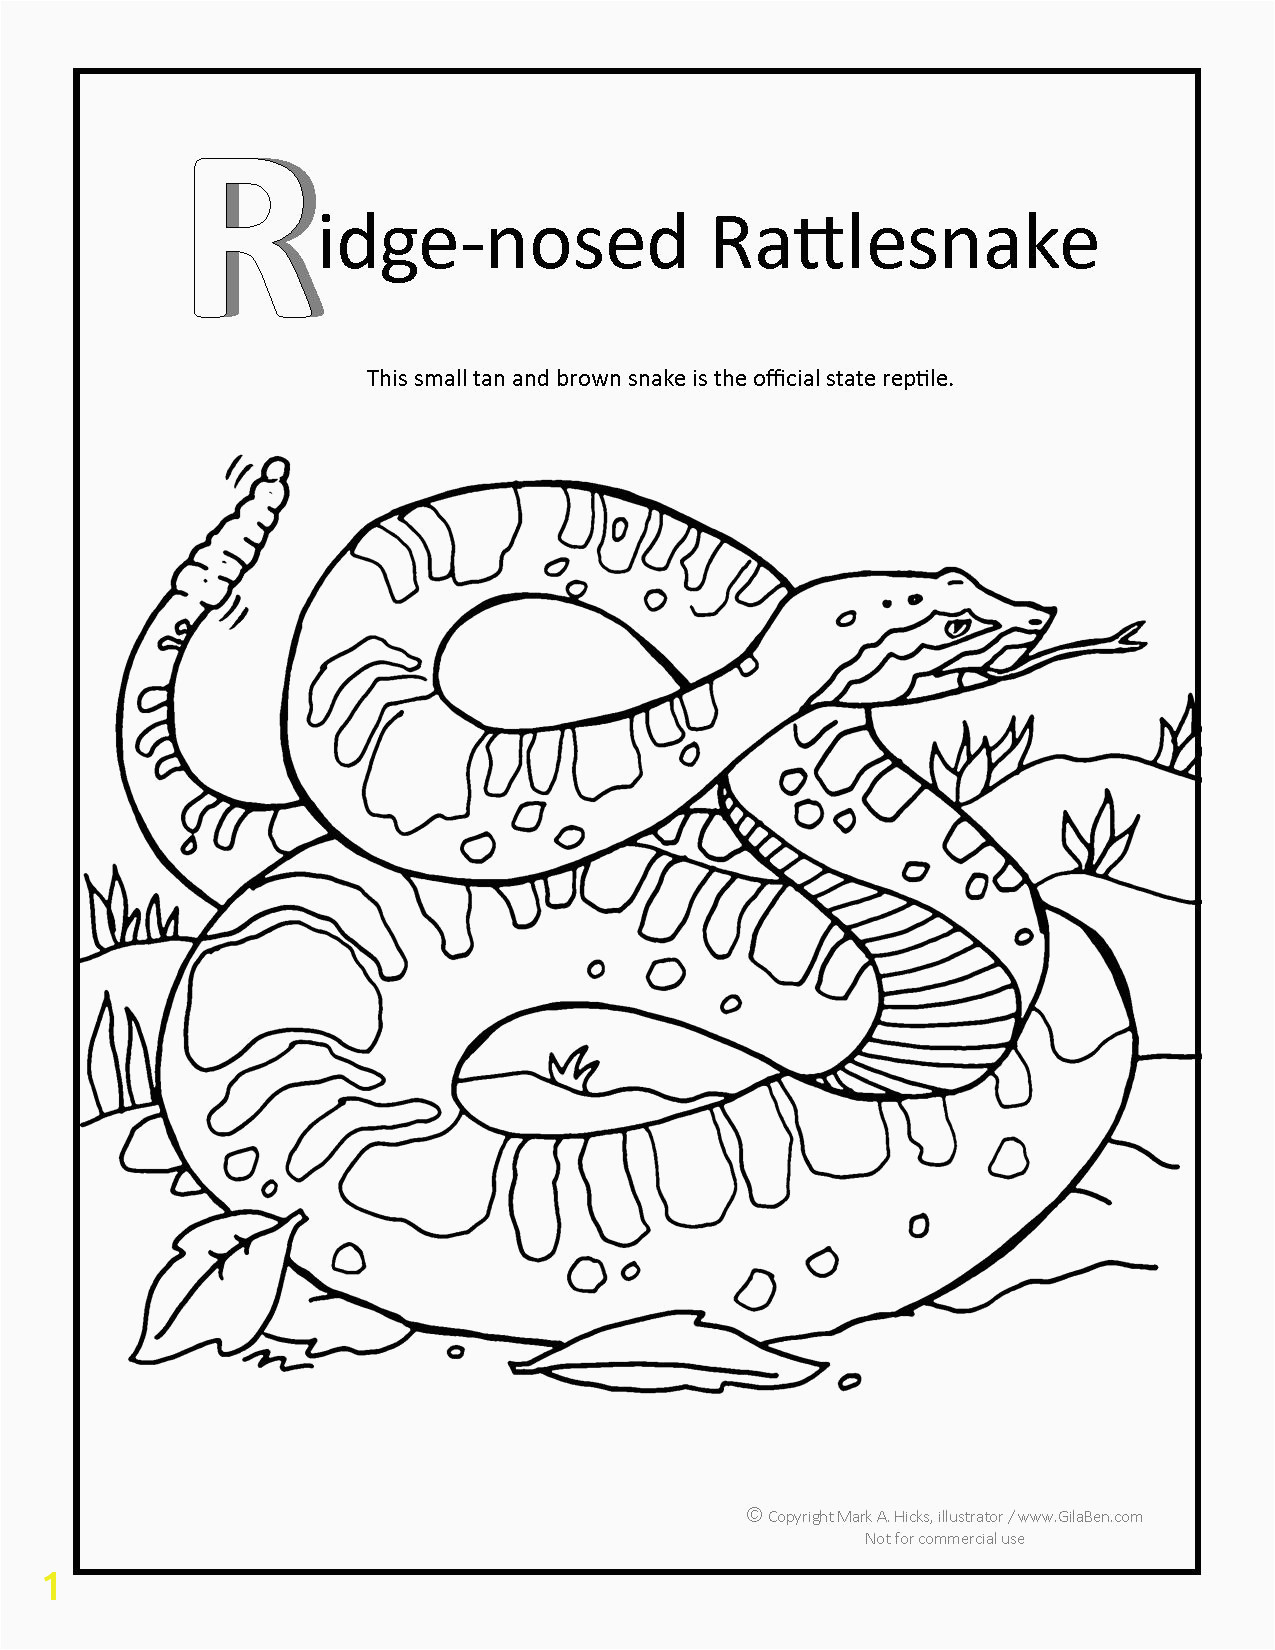 Tattle tail game coloring page best of rattle snake drawing at drawings of tattle tail game